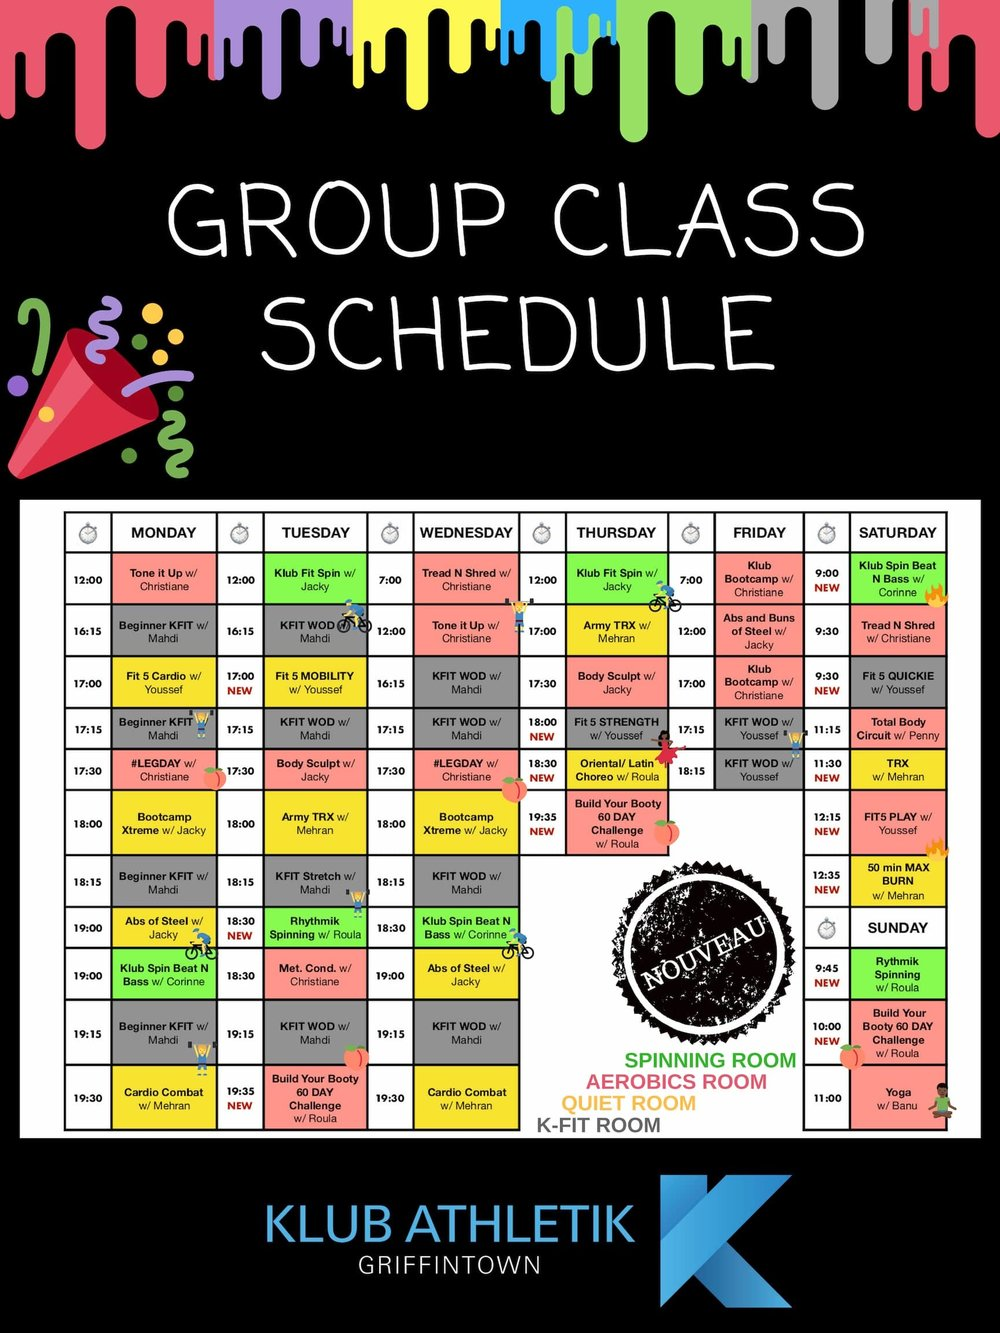 group exercise schedule of klub athletik griffintown gym